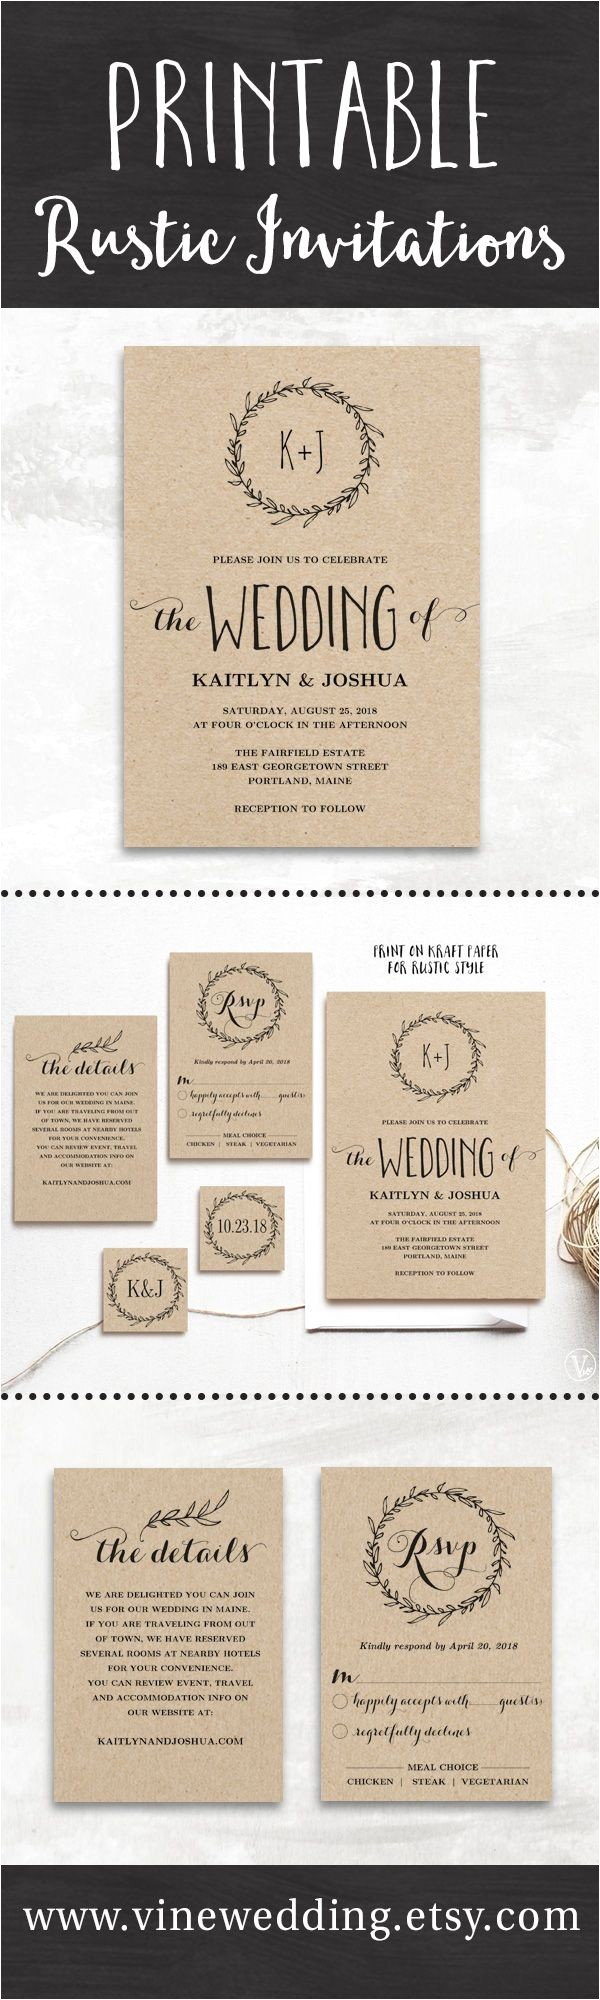 information to put on wedding invitation